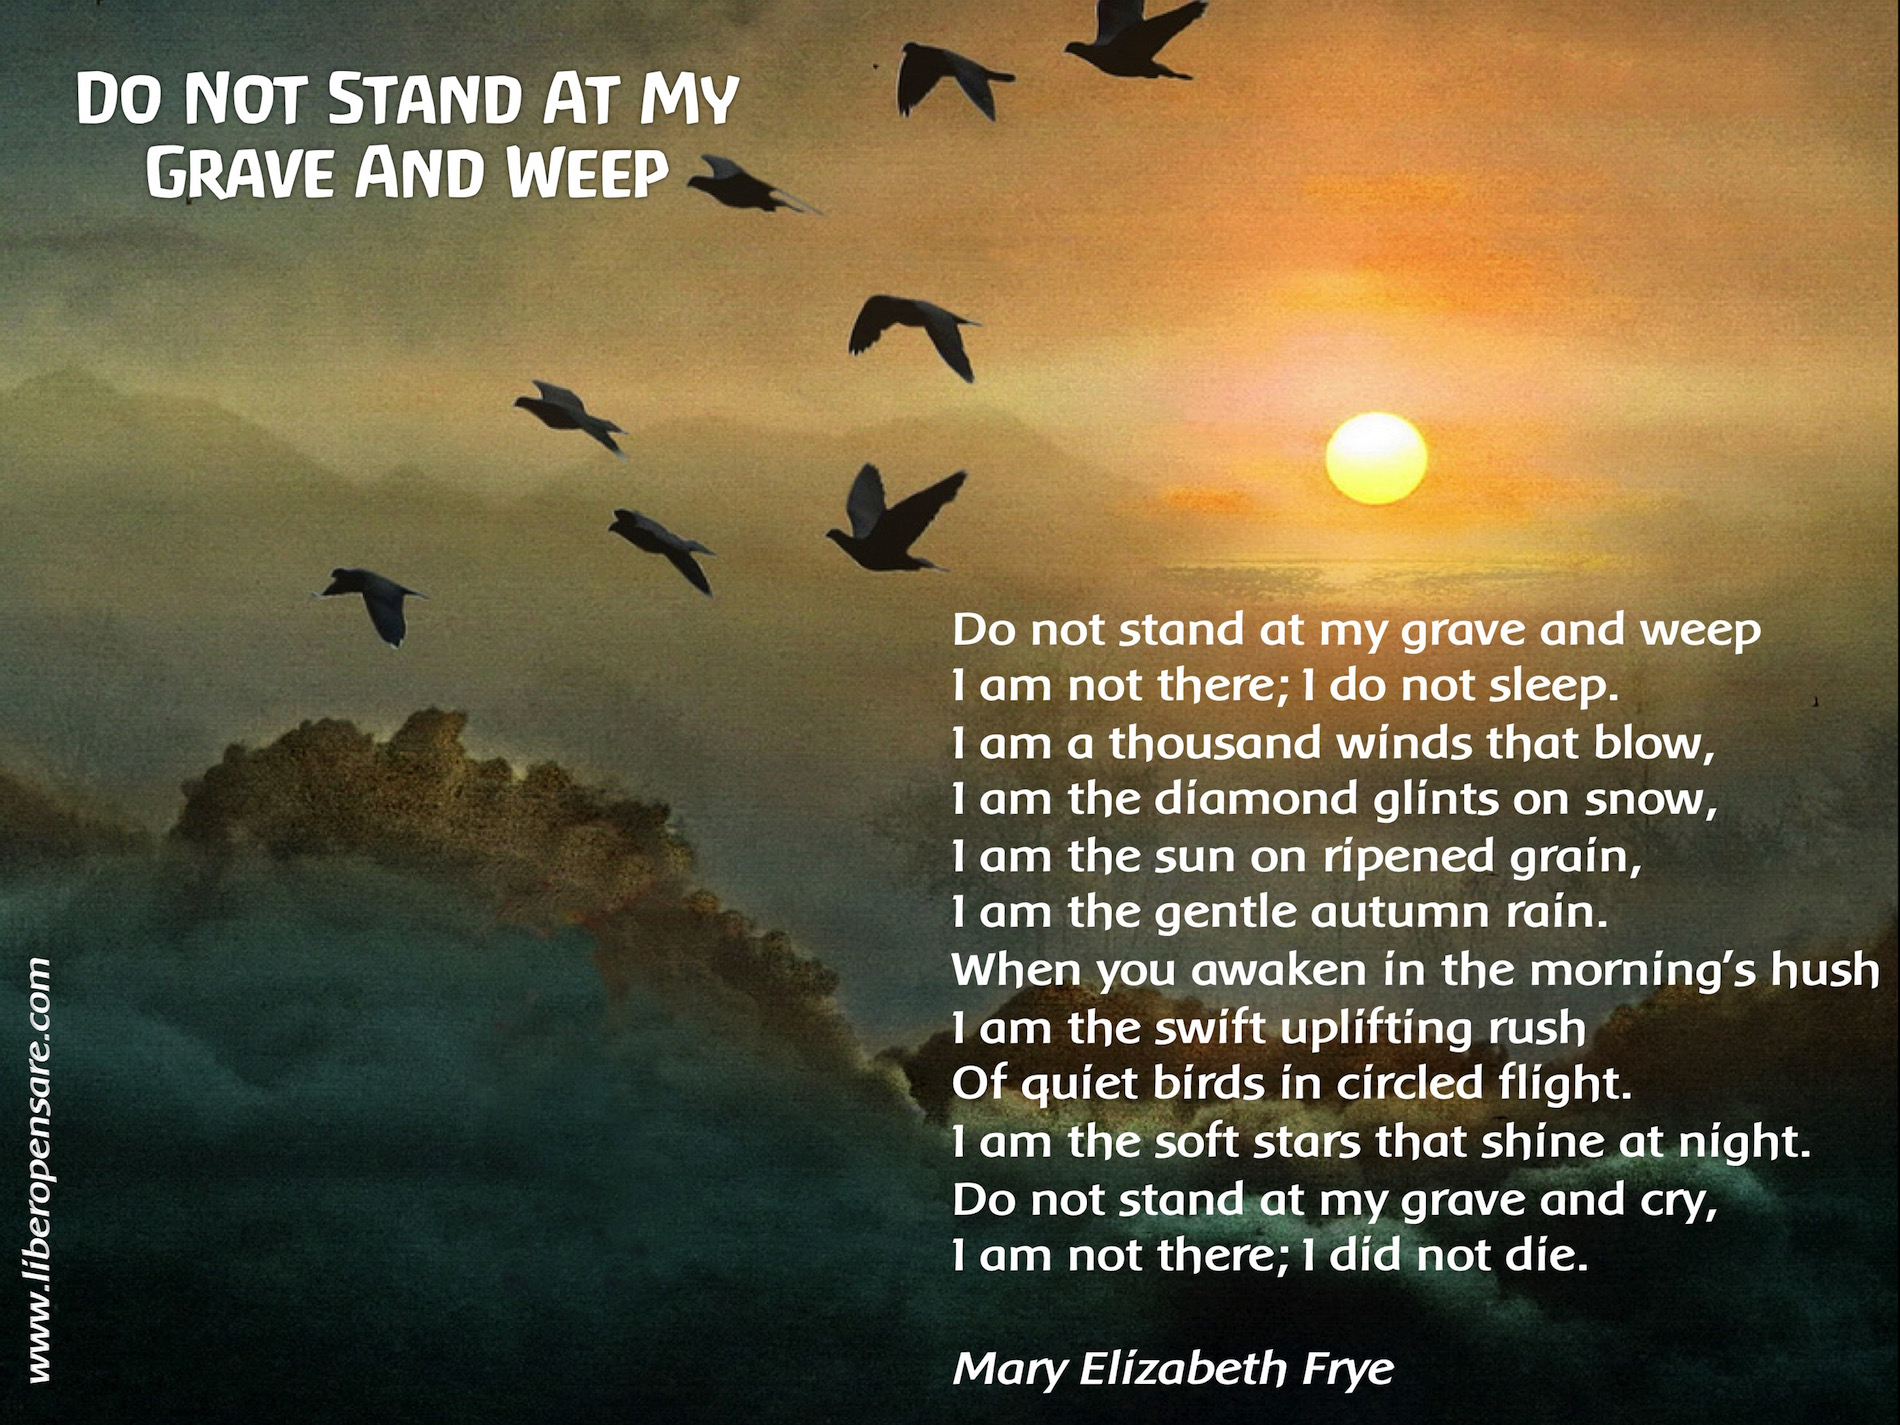 Do not stand at my grave and weep Mary Elizabeth Fryejpg